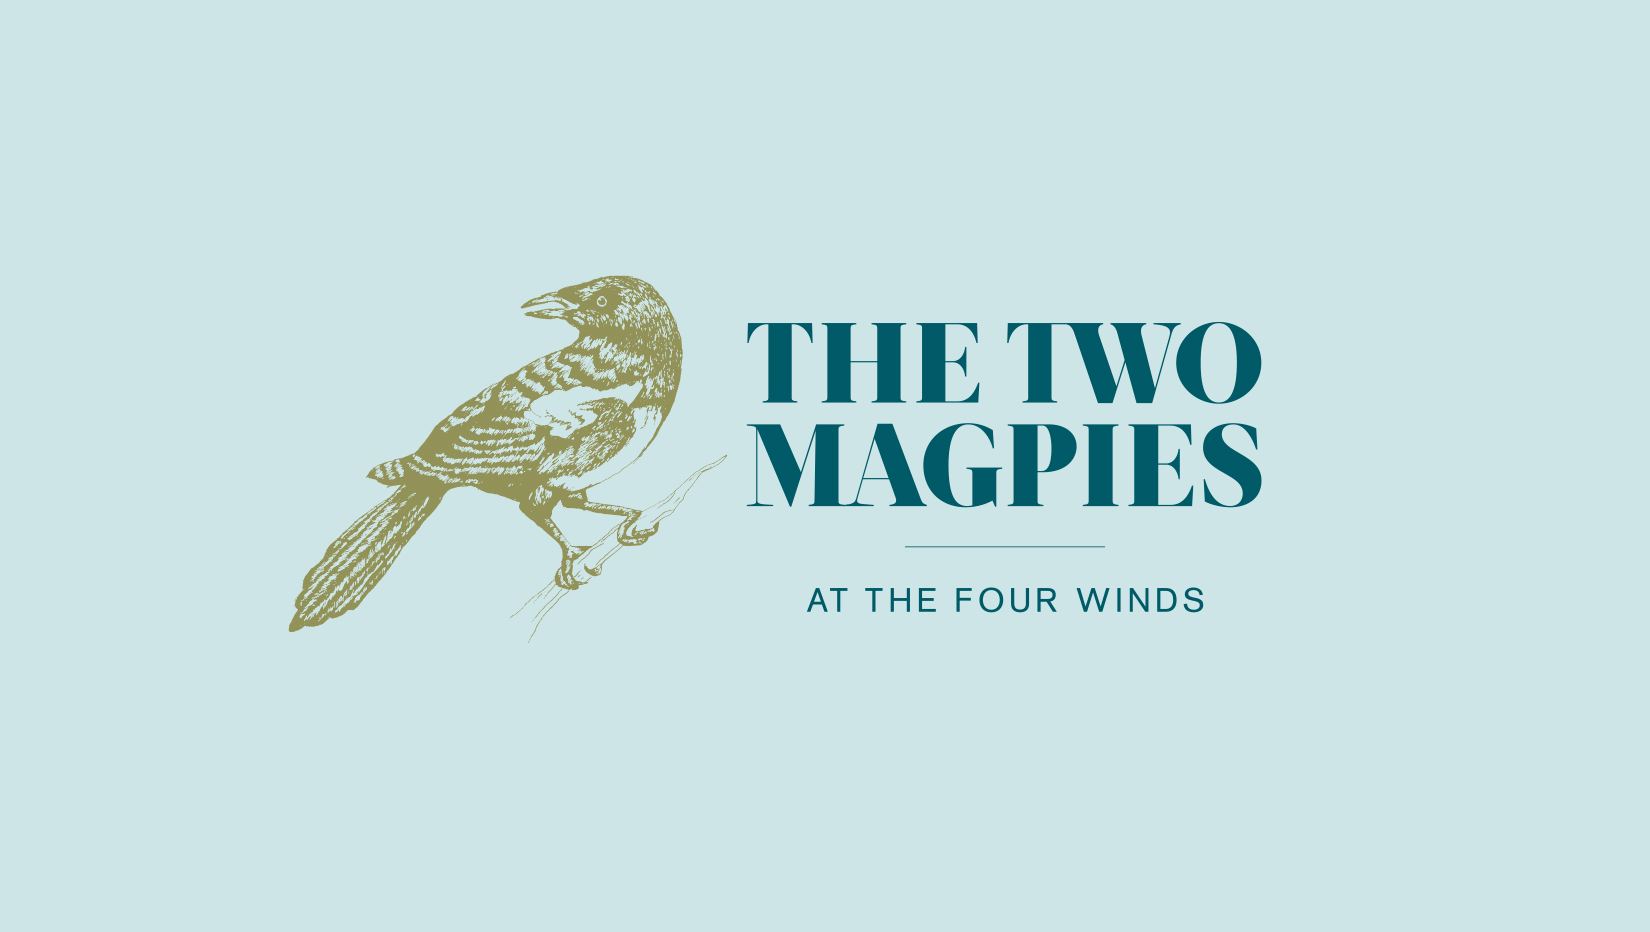 The Two Magpies